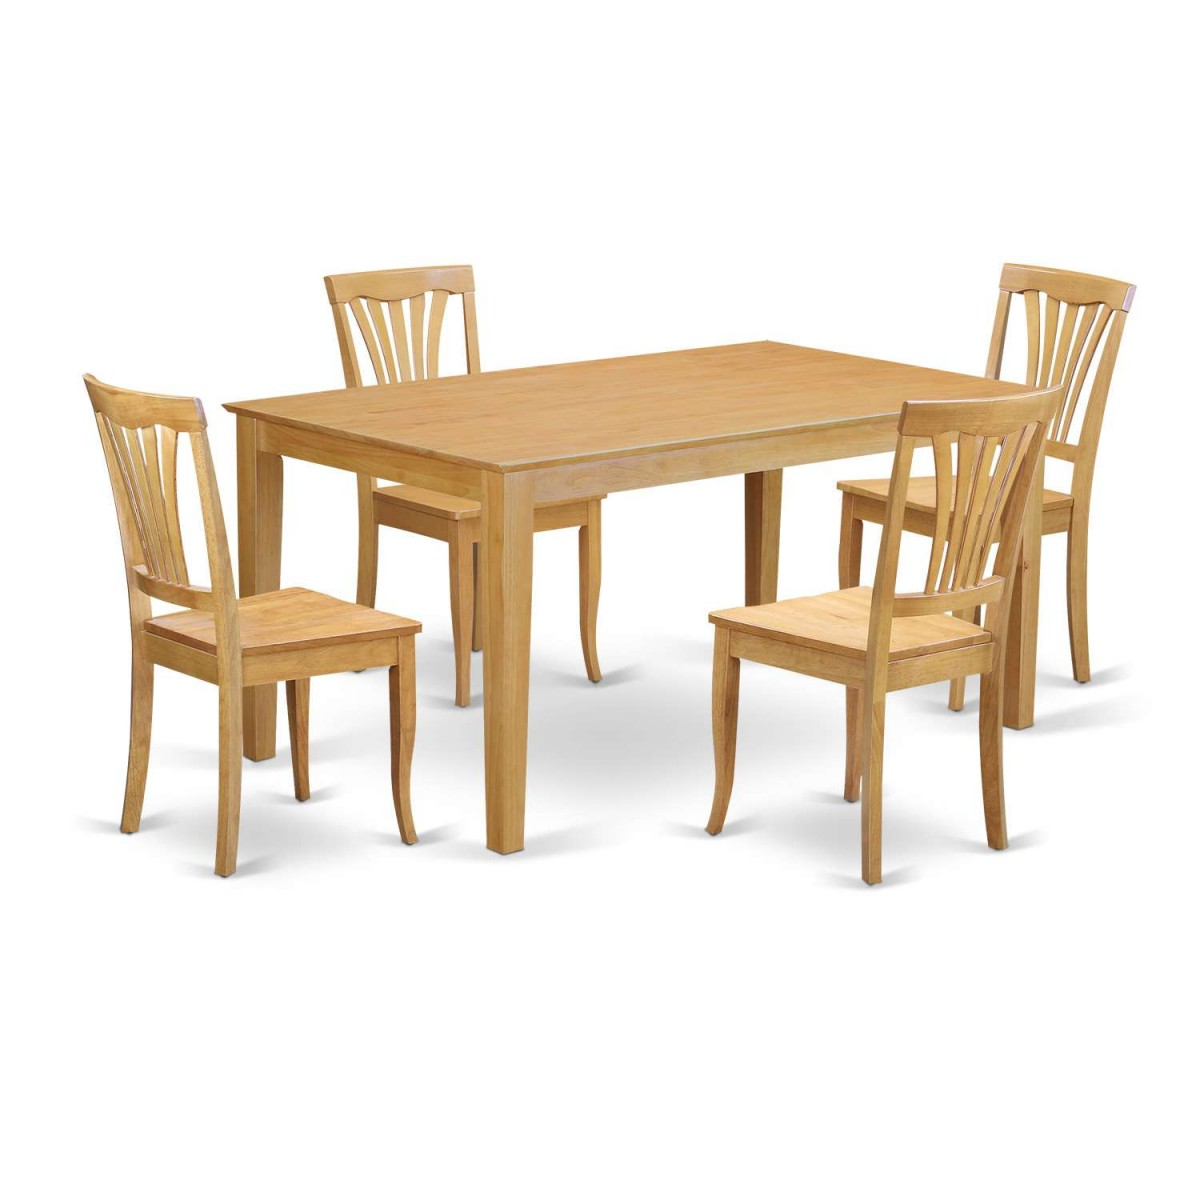 East West Furniture Capri 5 Piece Small Kitchen Table Set